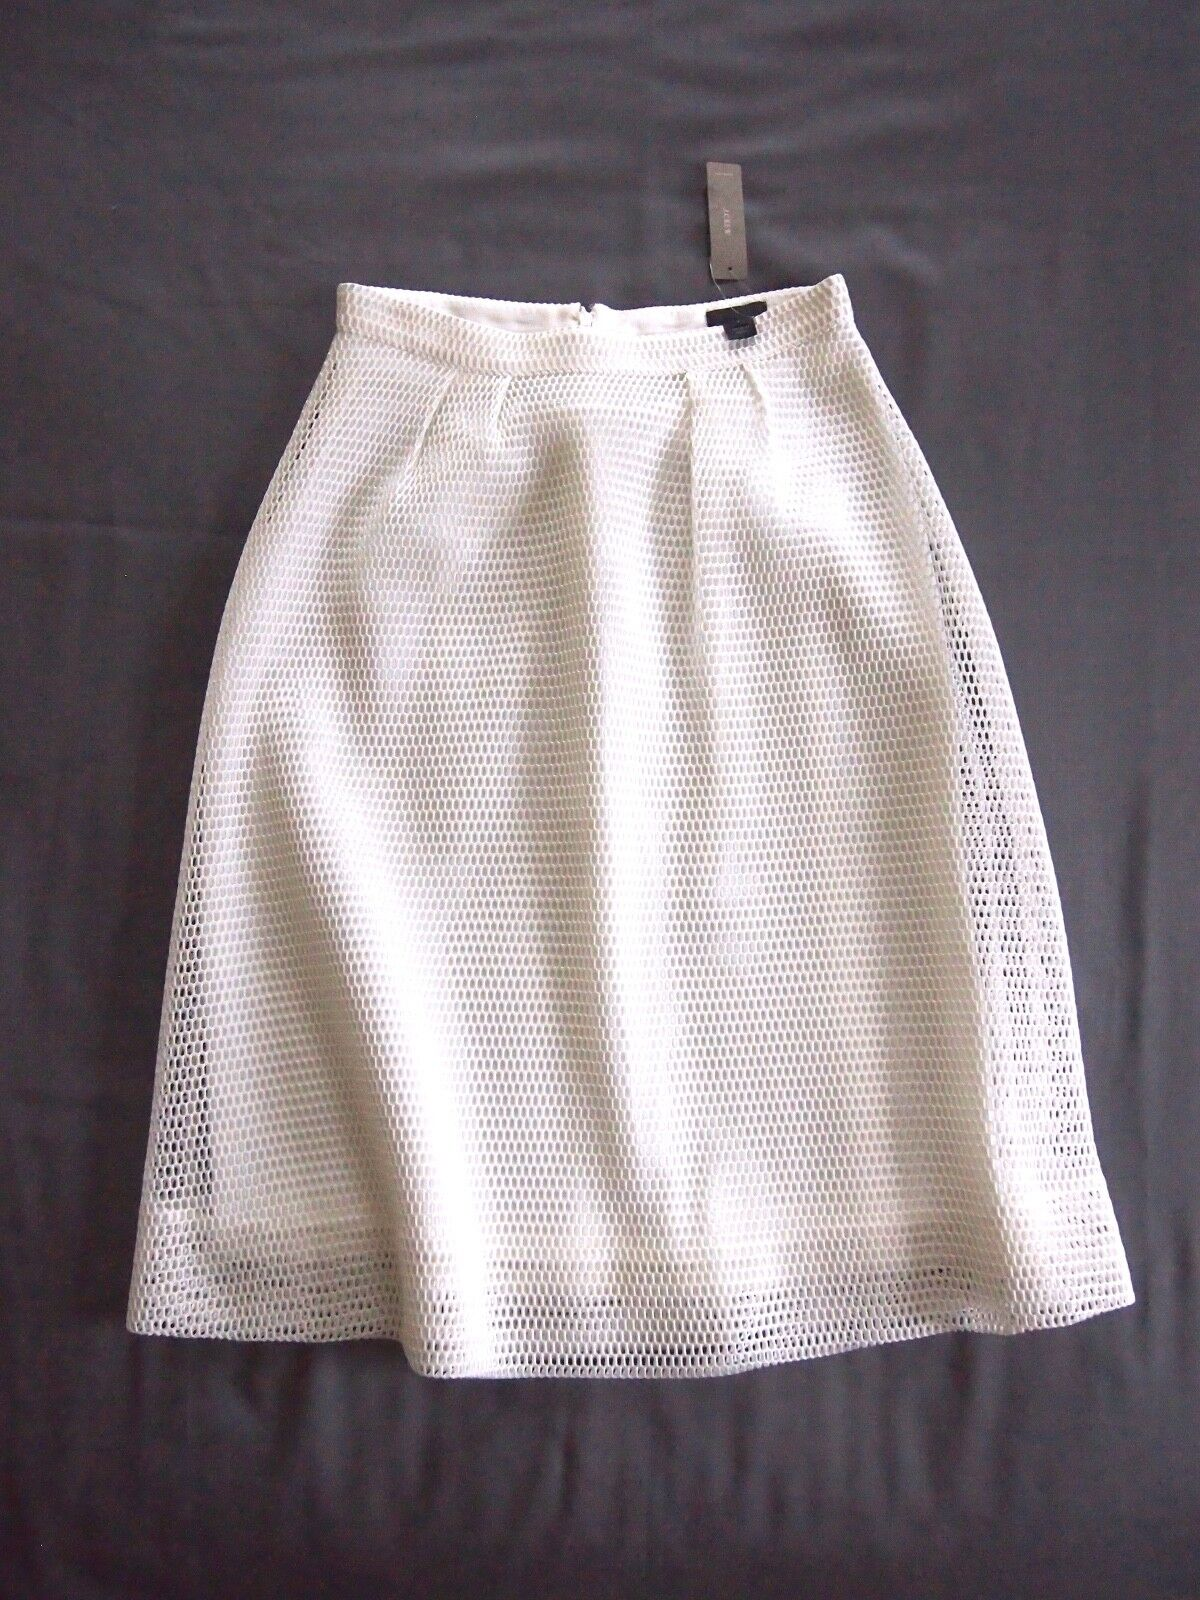 J. Crew Collection White Fully Lined Net A-Line Skirt - 4 - NEW with Tags